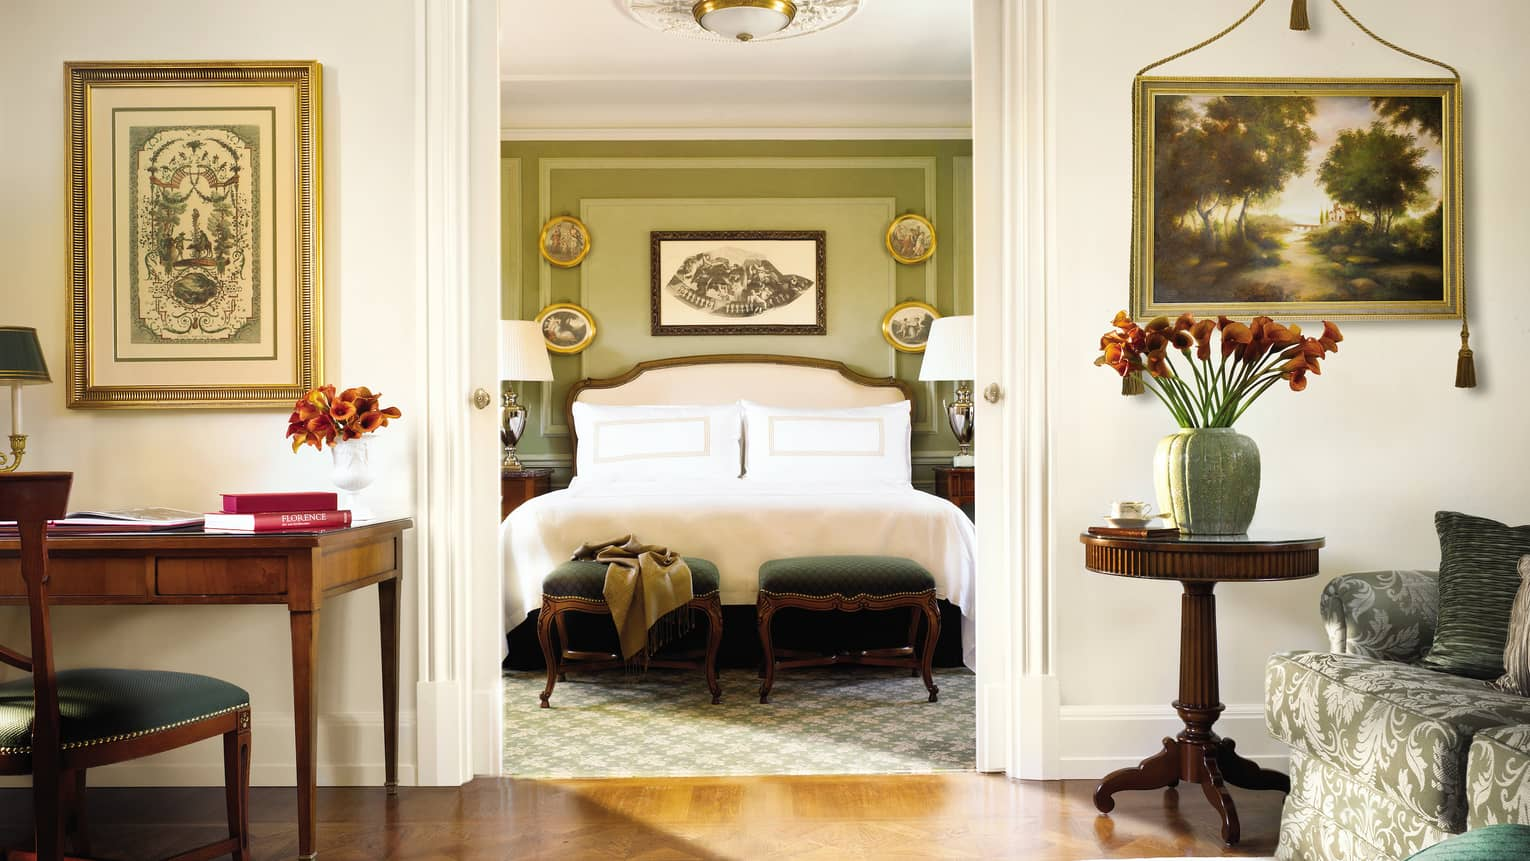 Four Seasons Executive Suite desk, chair by bedroom doorway, bed and scarf across green footstools